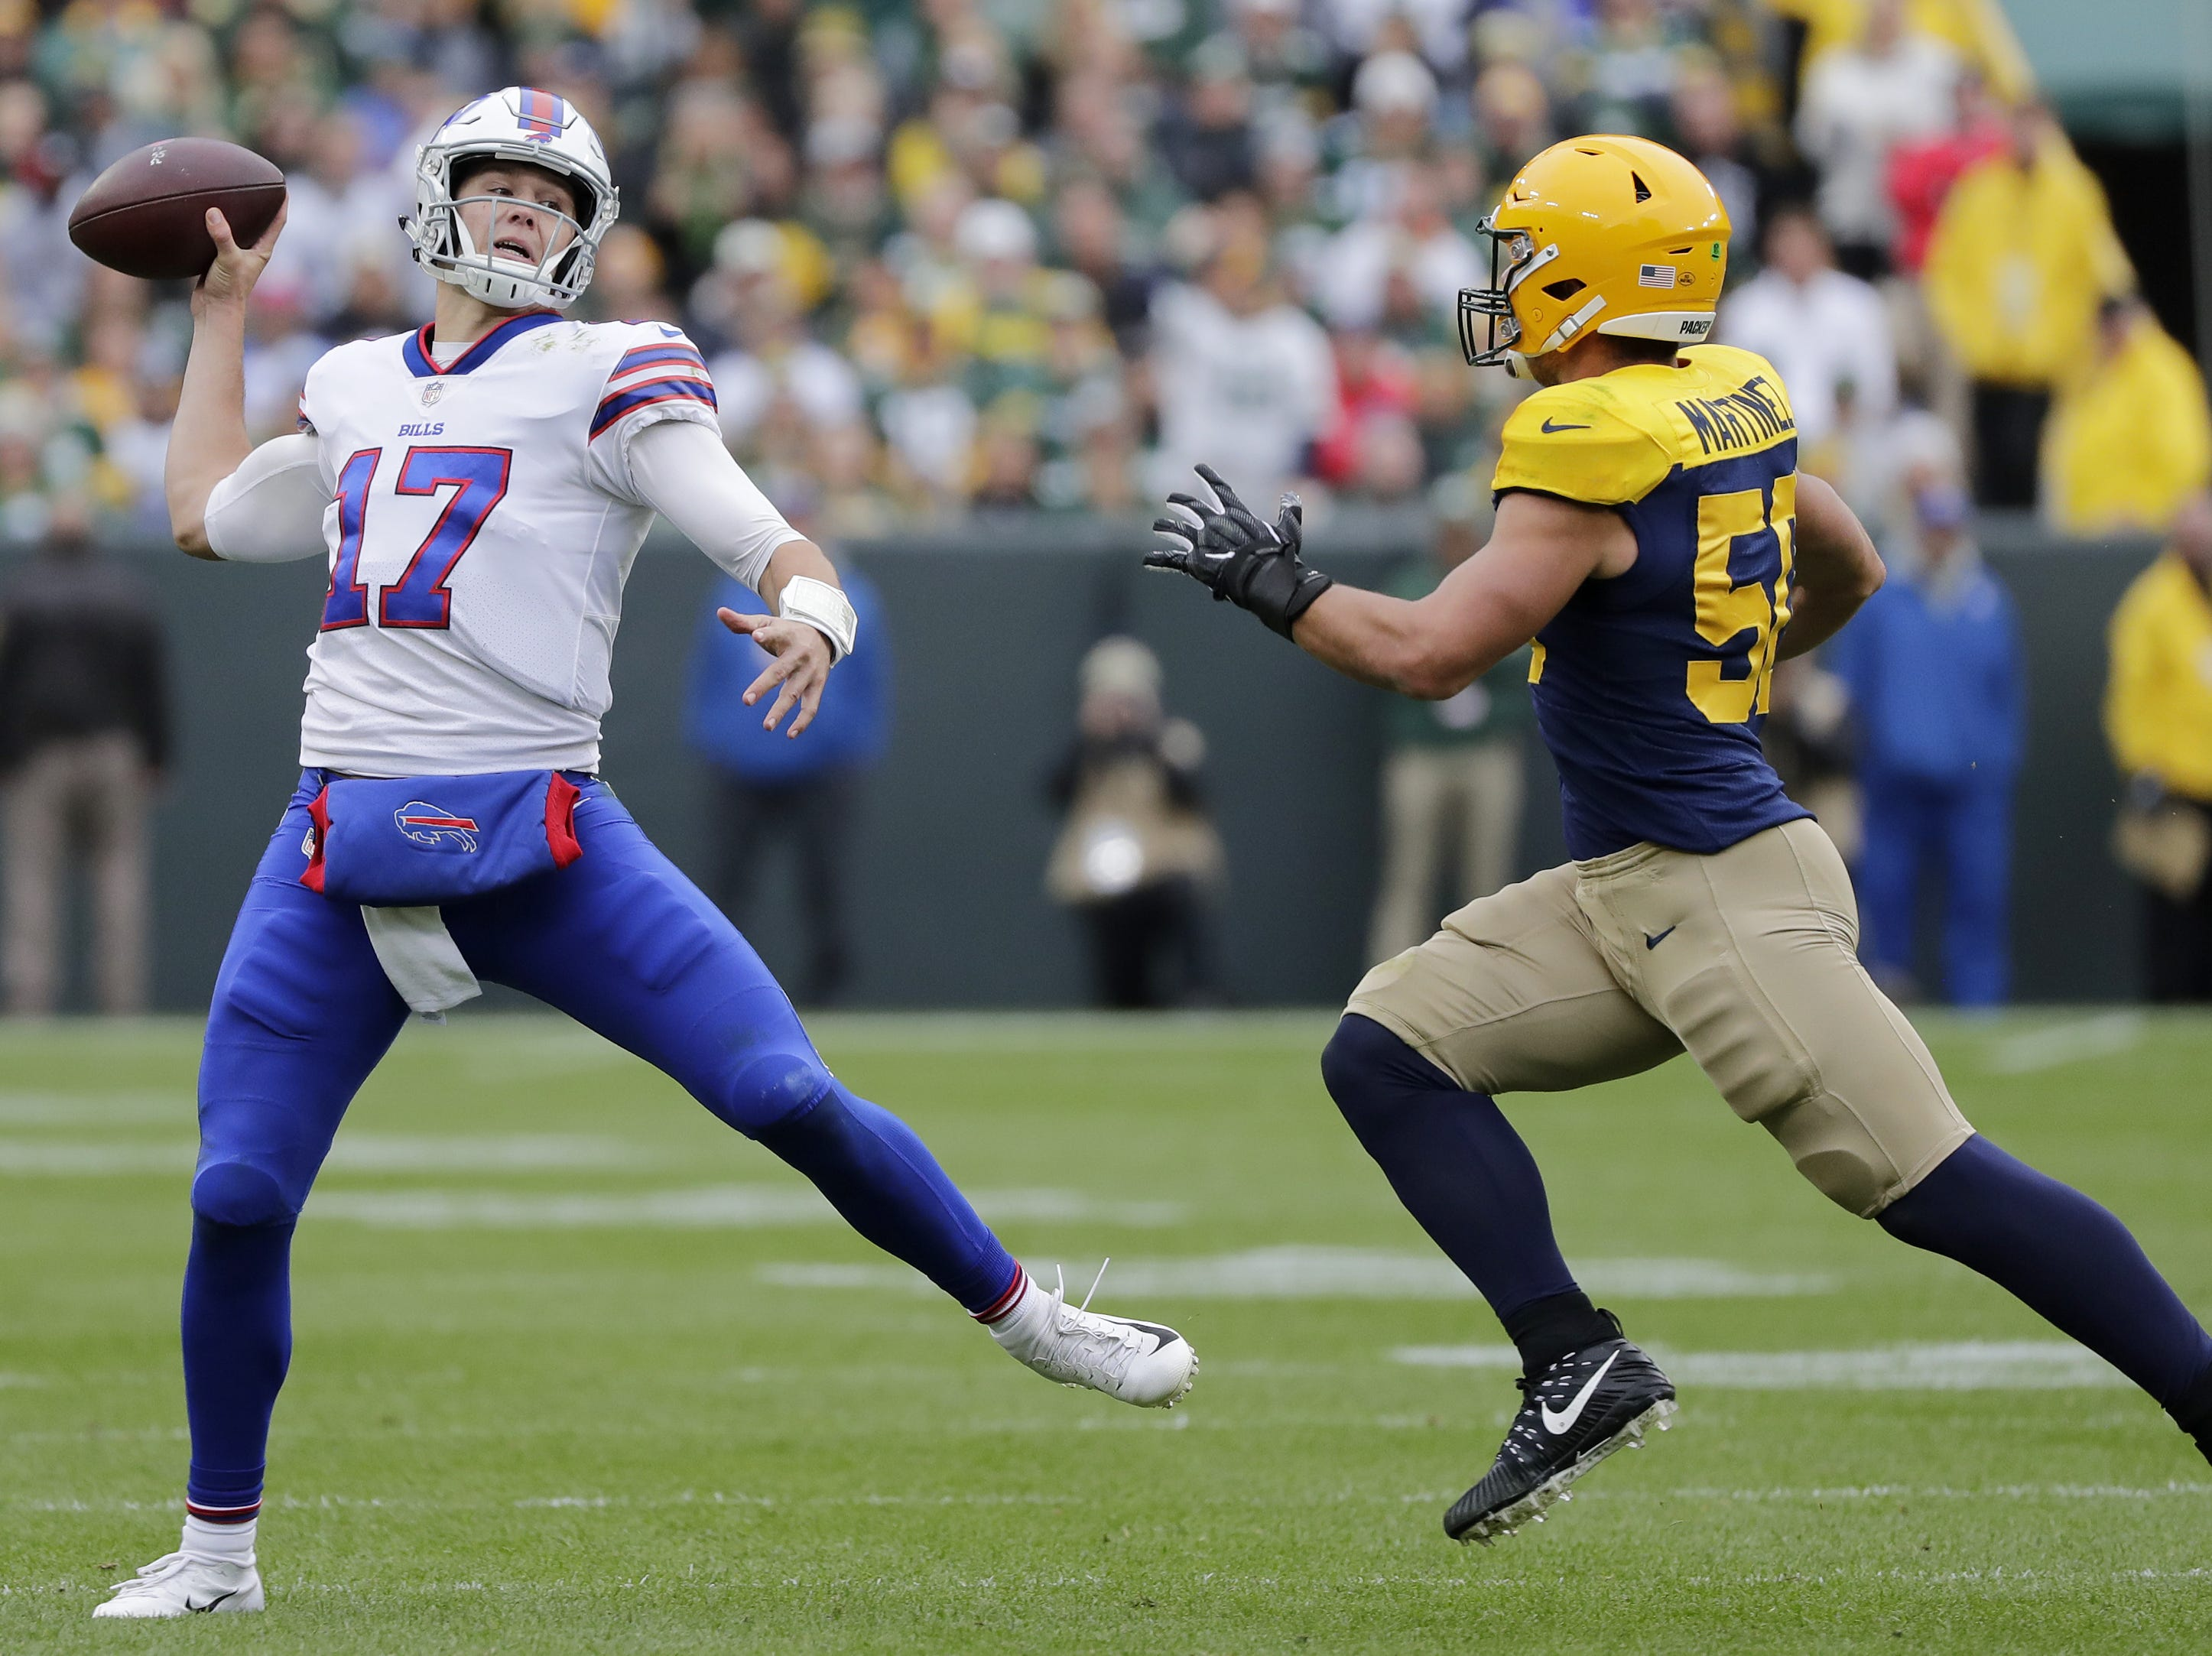 Buffalo Bills quarterback Josh Allen (17) throws an interception under pressure from Green Bay Packers linebacker Blake Martinez (50) in the second quarter at Lambeau Field on Sunday, September 30, 2018 in Green Bay, Wis. Adam Wesley/USA TODAY NETWORK-Wisconsin